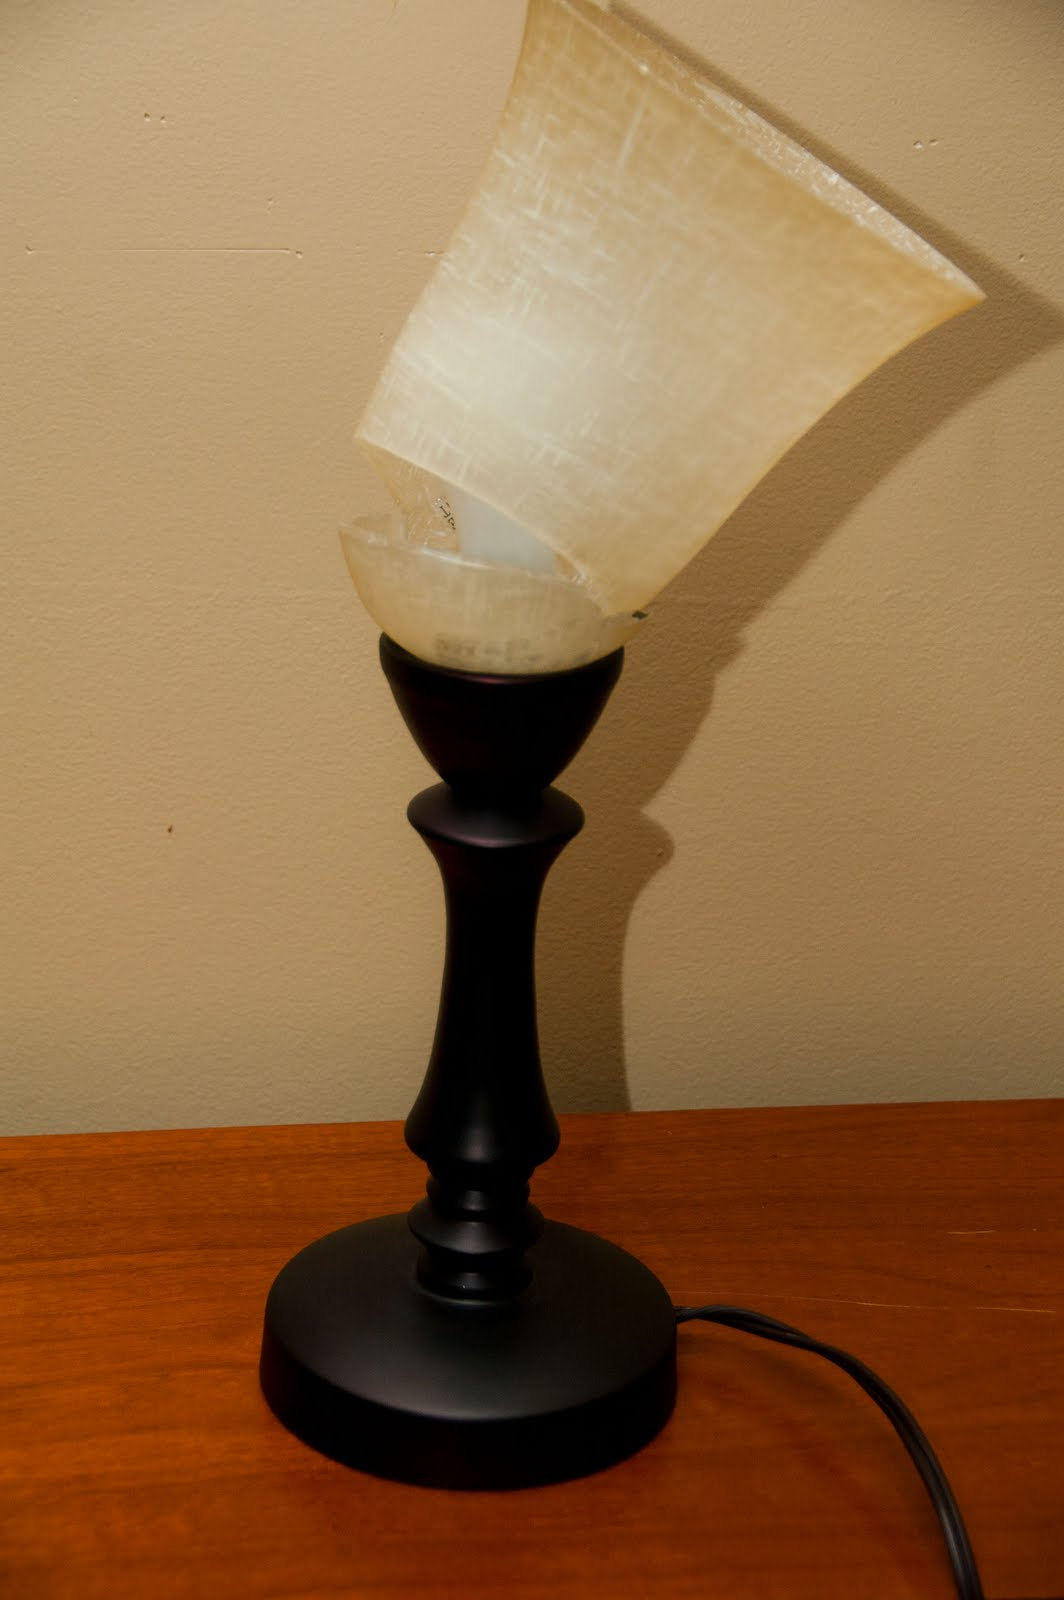 How to fix a broken lamp with instant glue